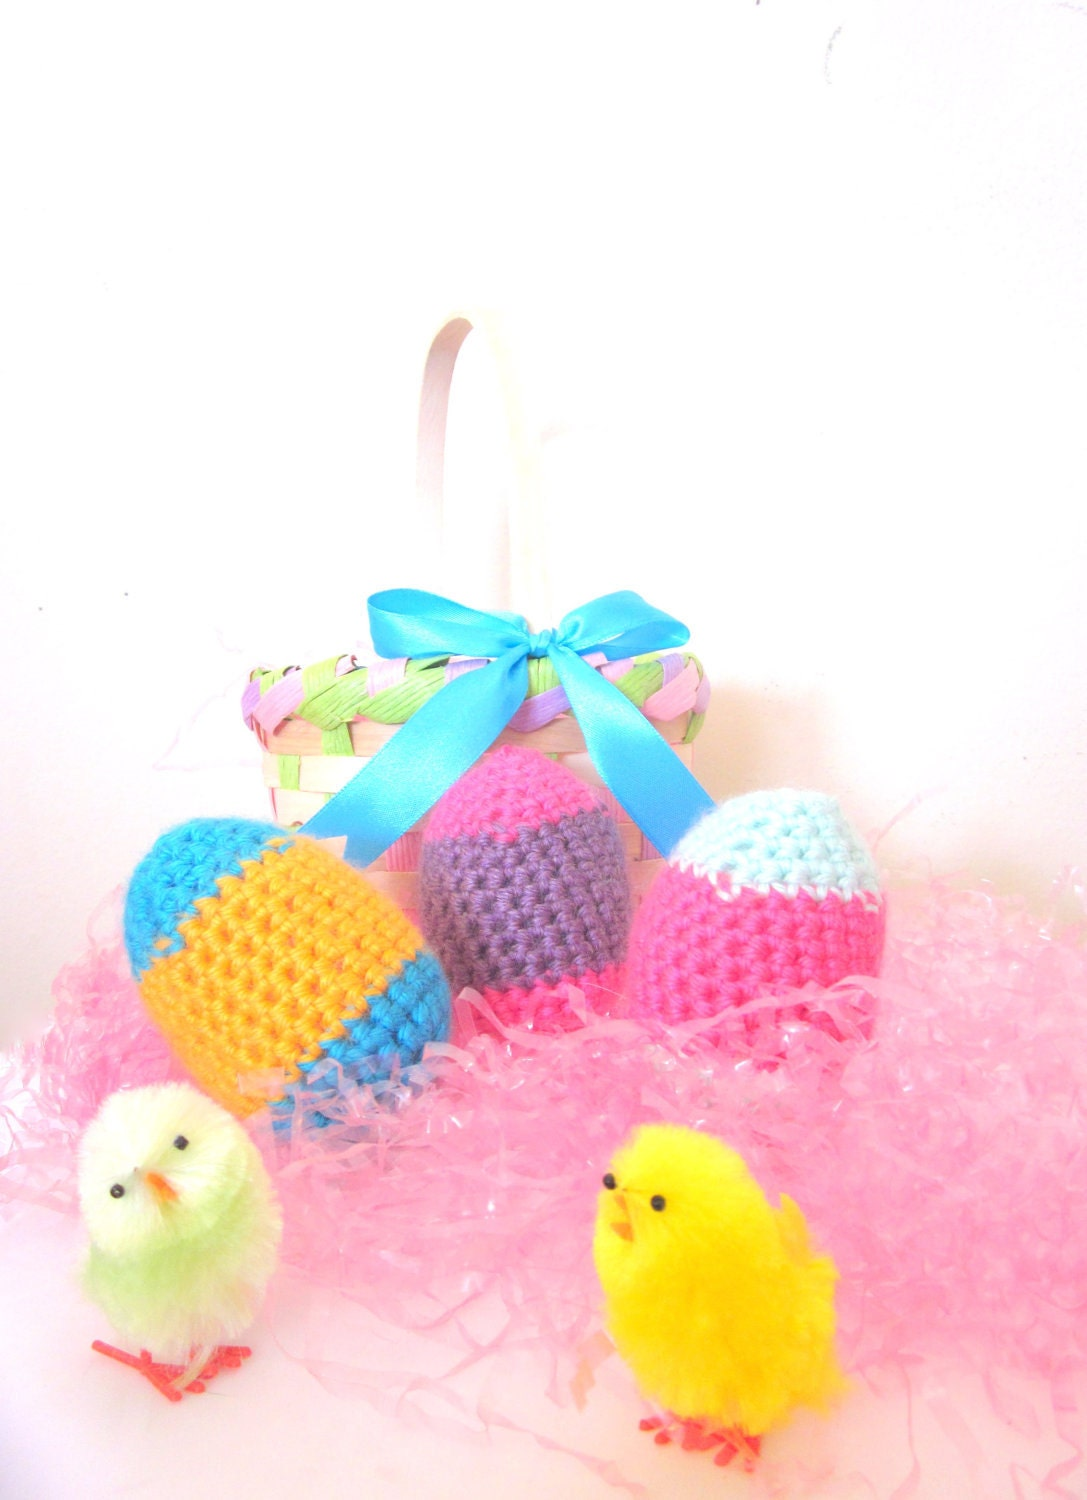 il 170x135.311401145 Etsy Crochet Treasury: Celebrate Springtime!